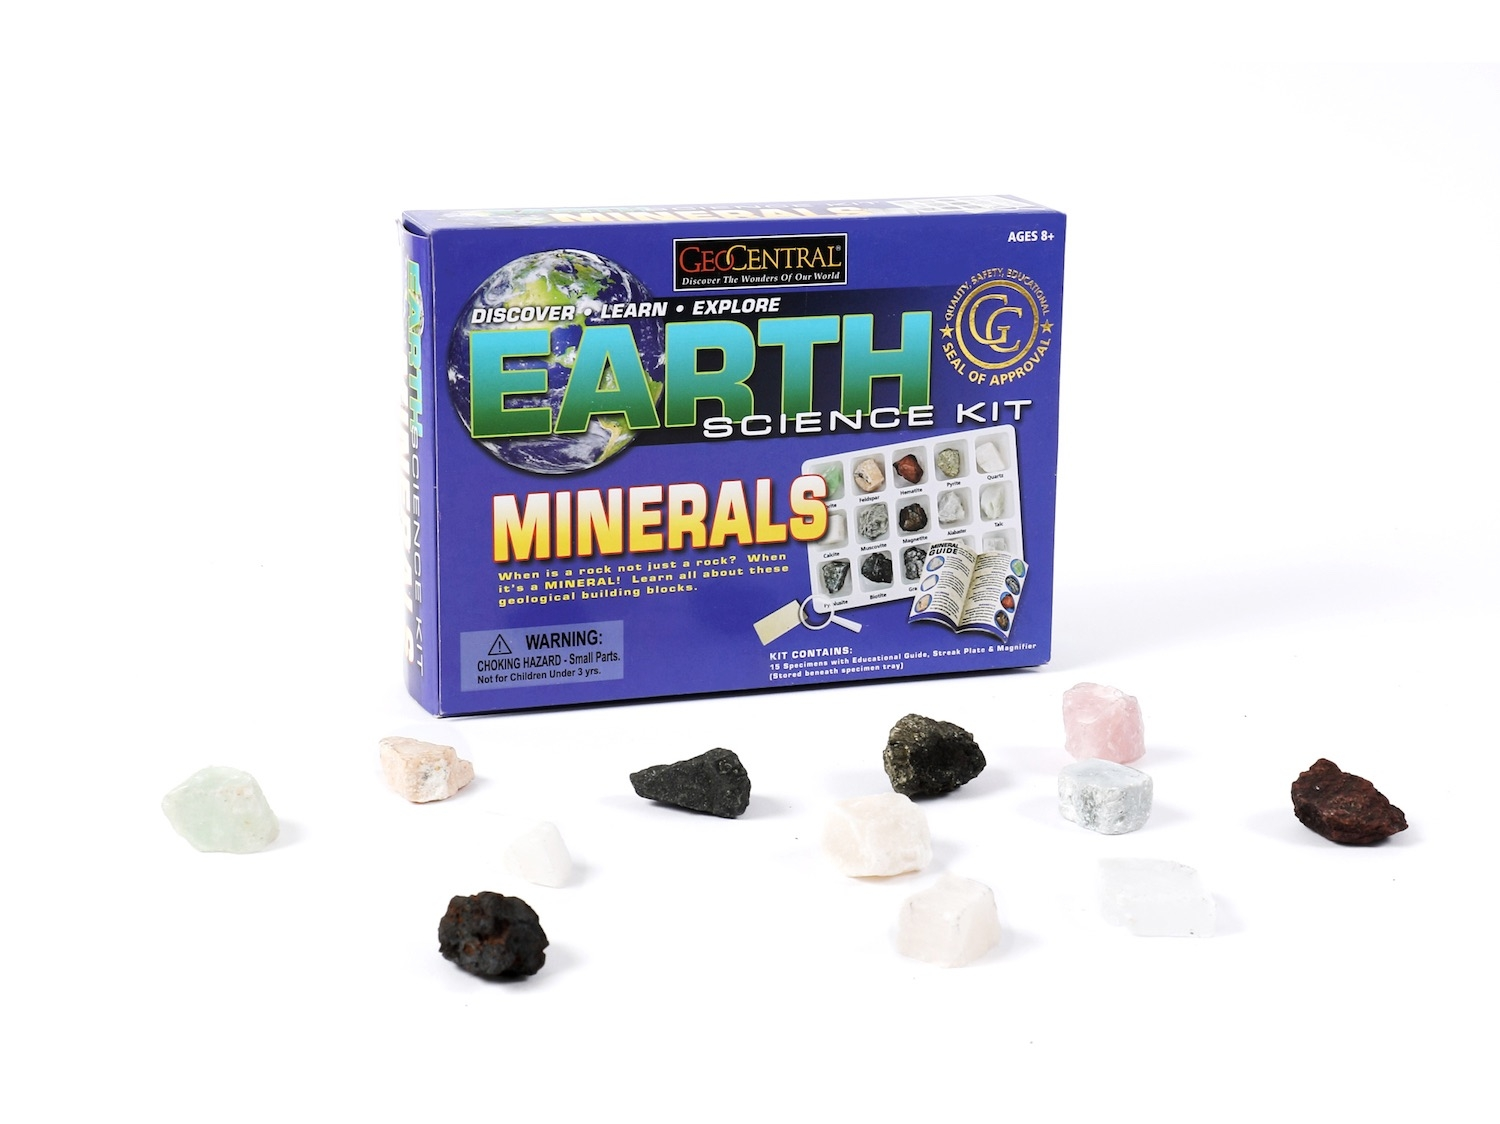 Alternate Earth Science Kit image 0